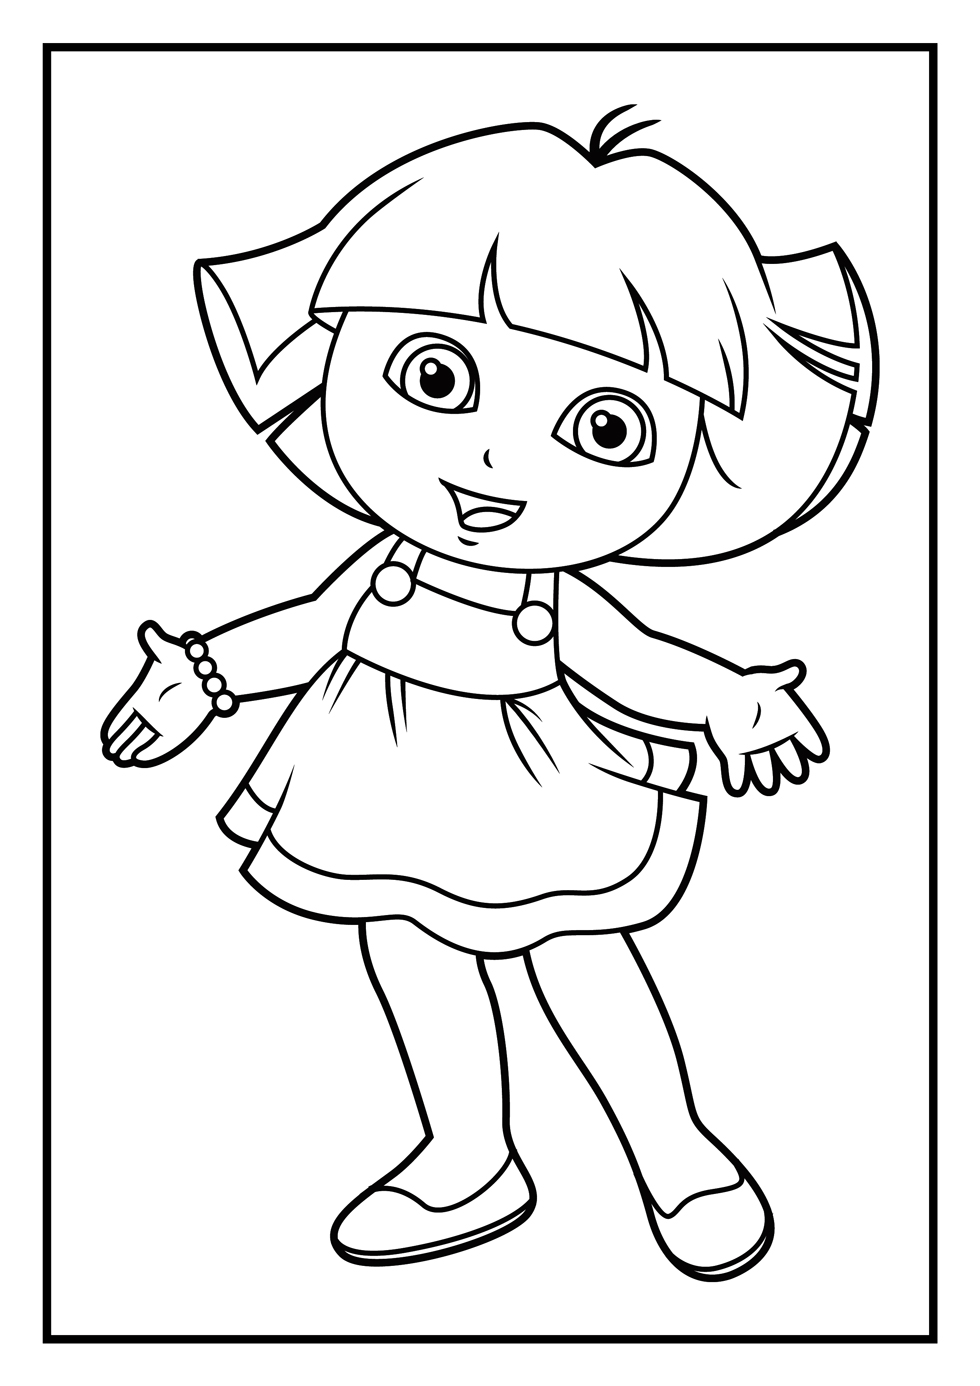 980x1386 Diego And Boots Dora The Explorer Coloring Page Printable To Good